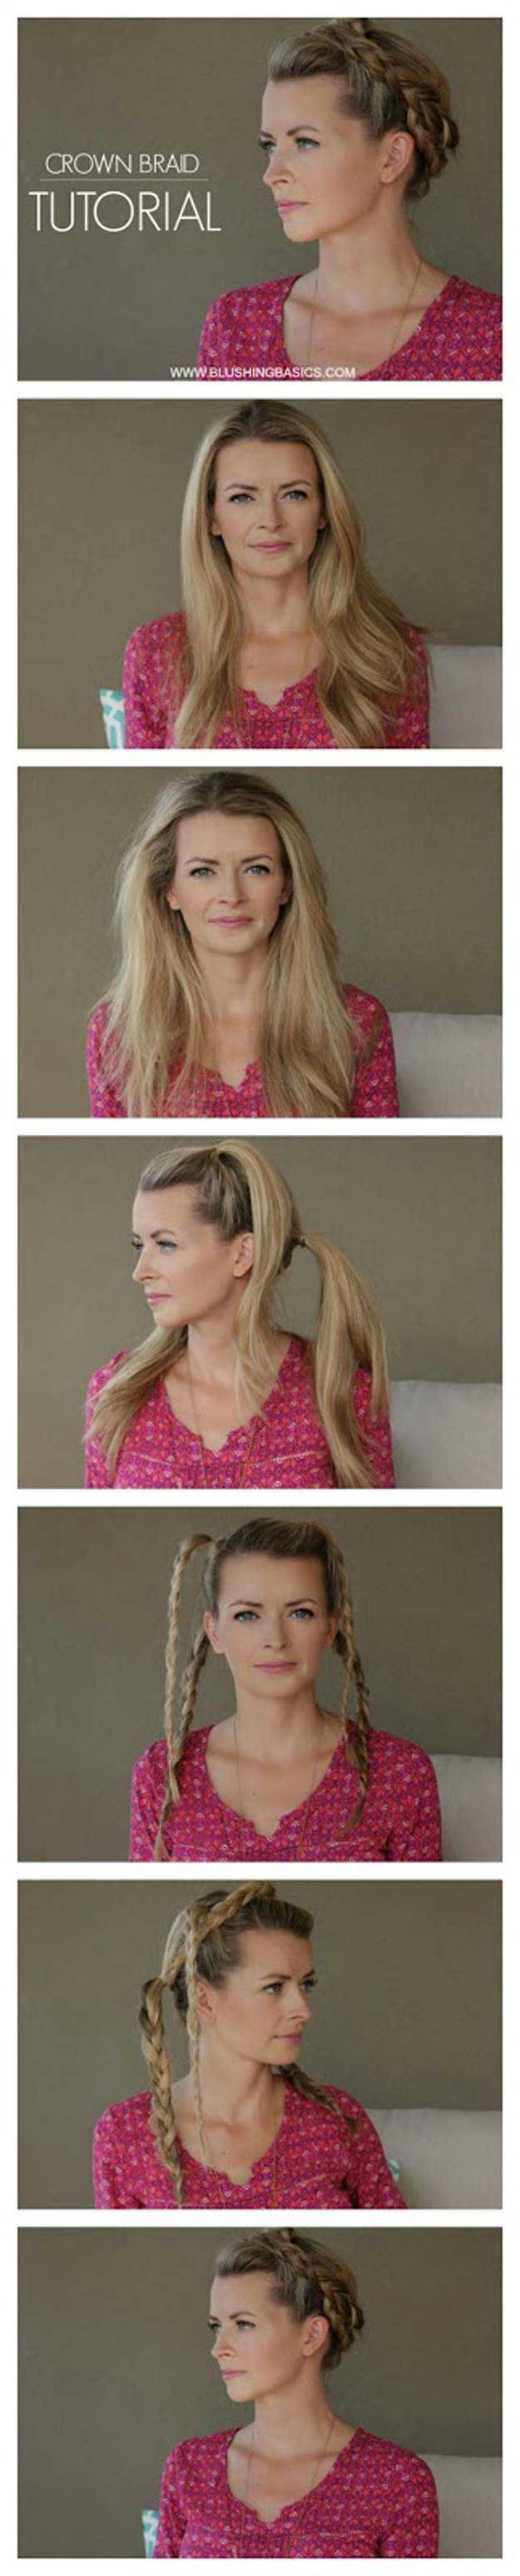 Best Hairstyles for Summer - Crown Braid Tutorial - Easy and Cute Hair Styles fo...